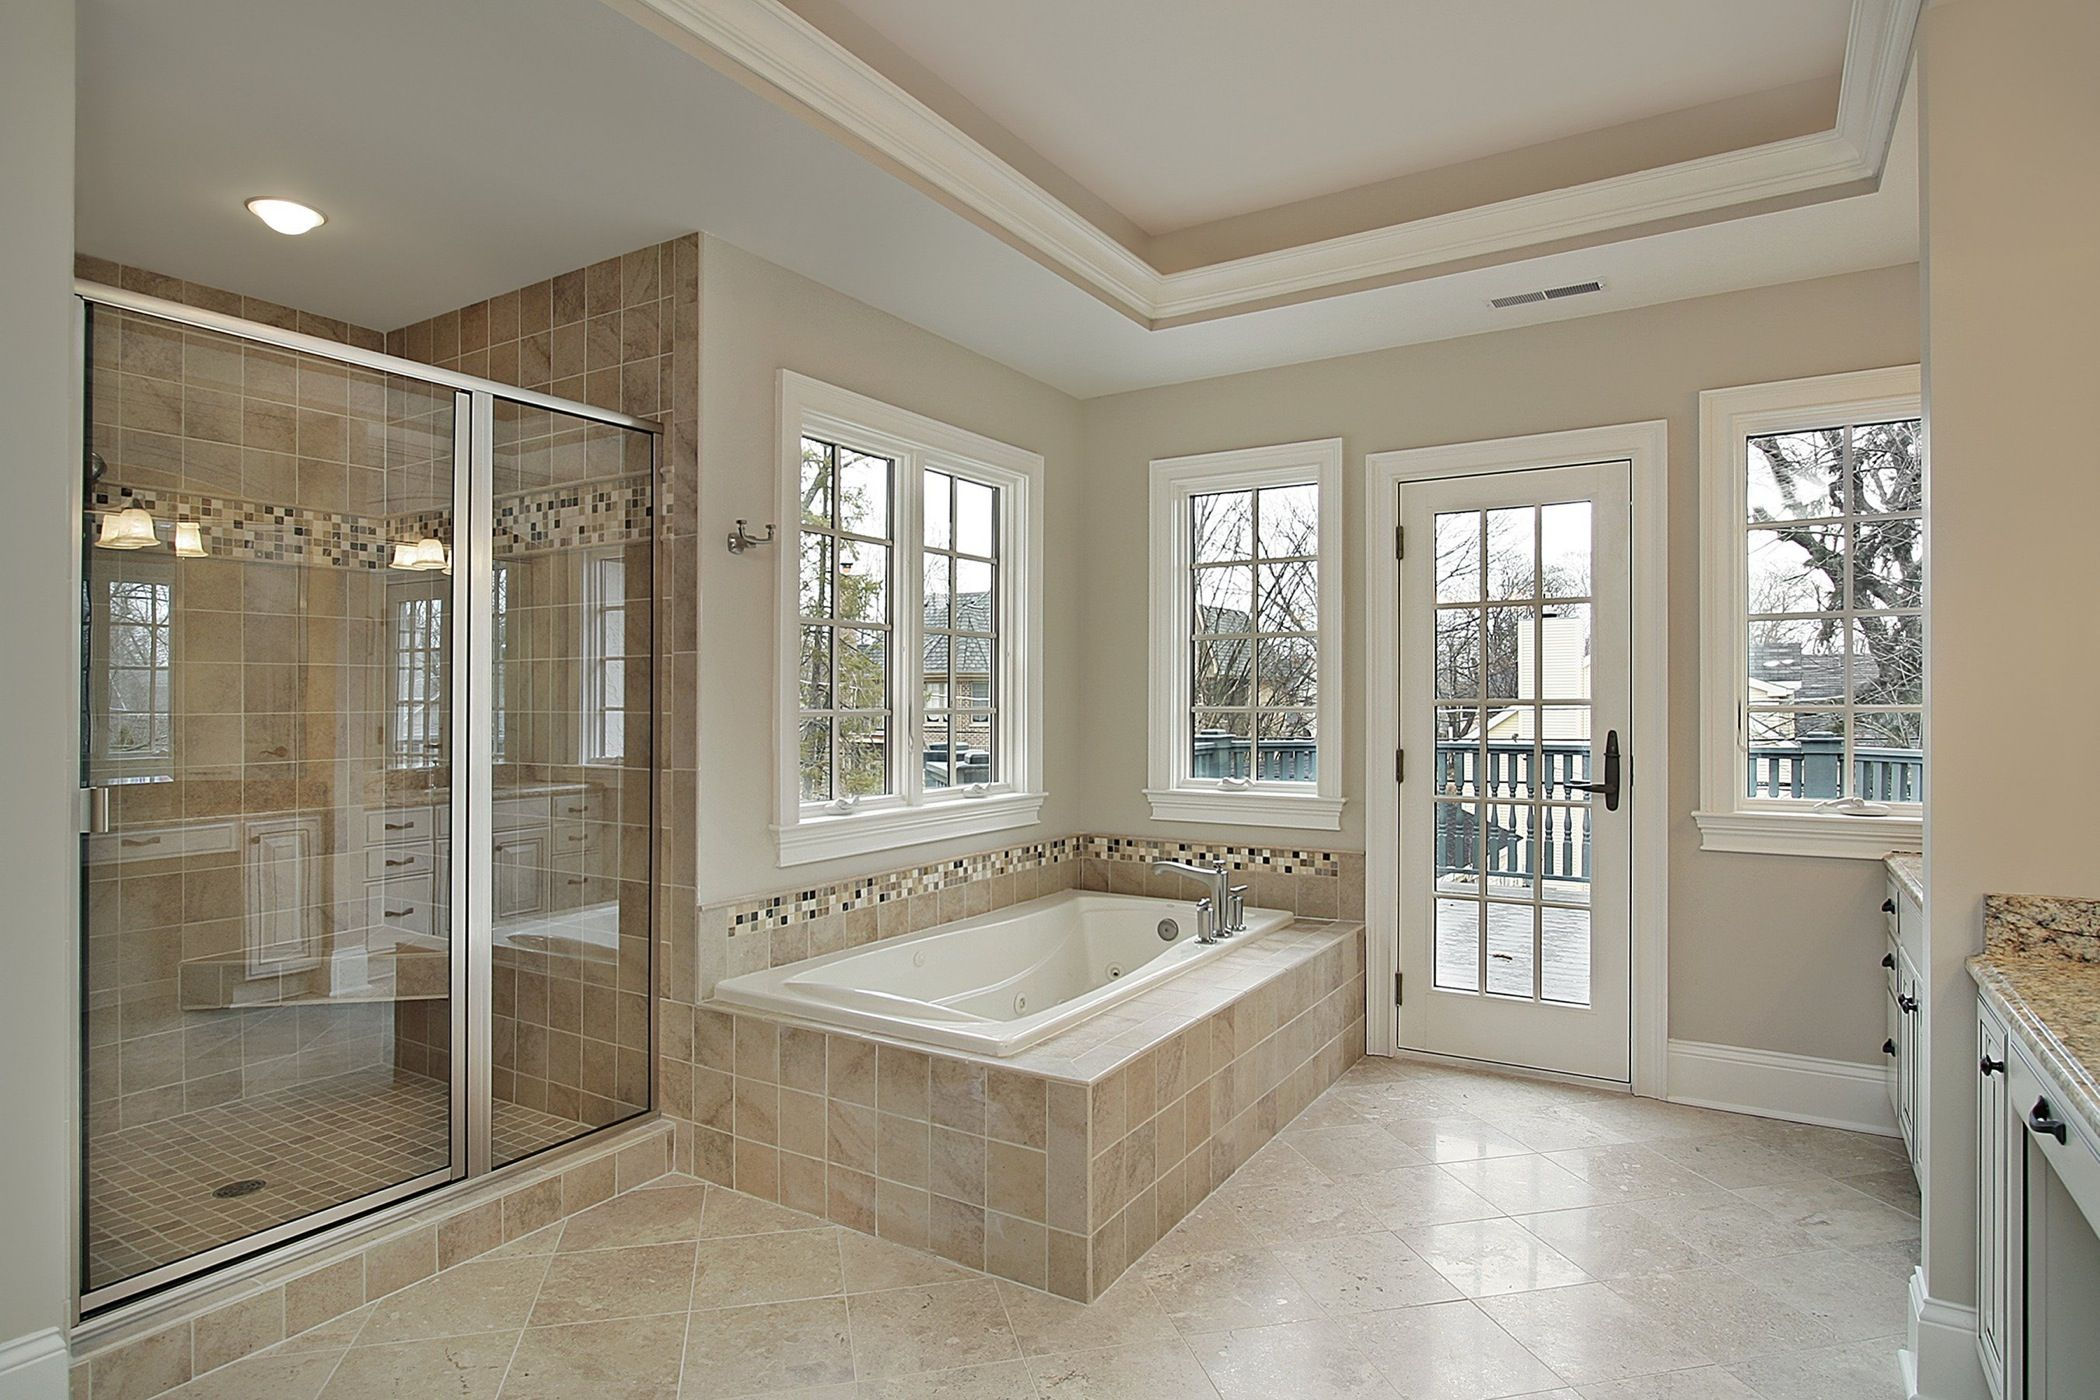 abusinessplan gallery design inside cans remodel stunning awesome garbage us set batman com eccleshallfc bathroom boise apps images home top throughout